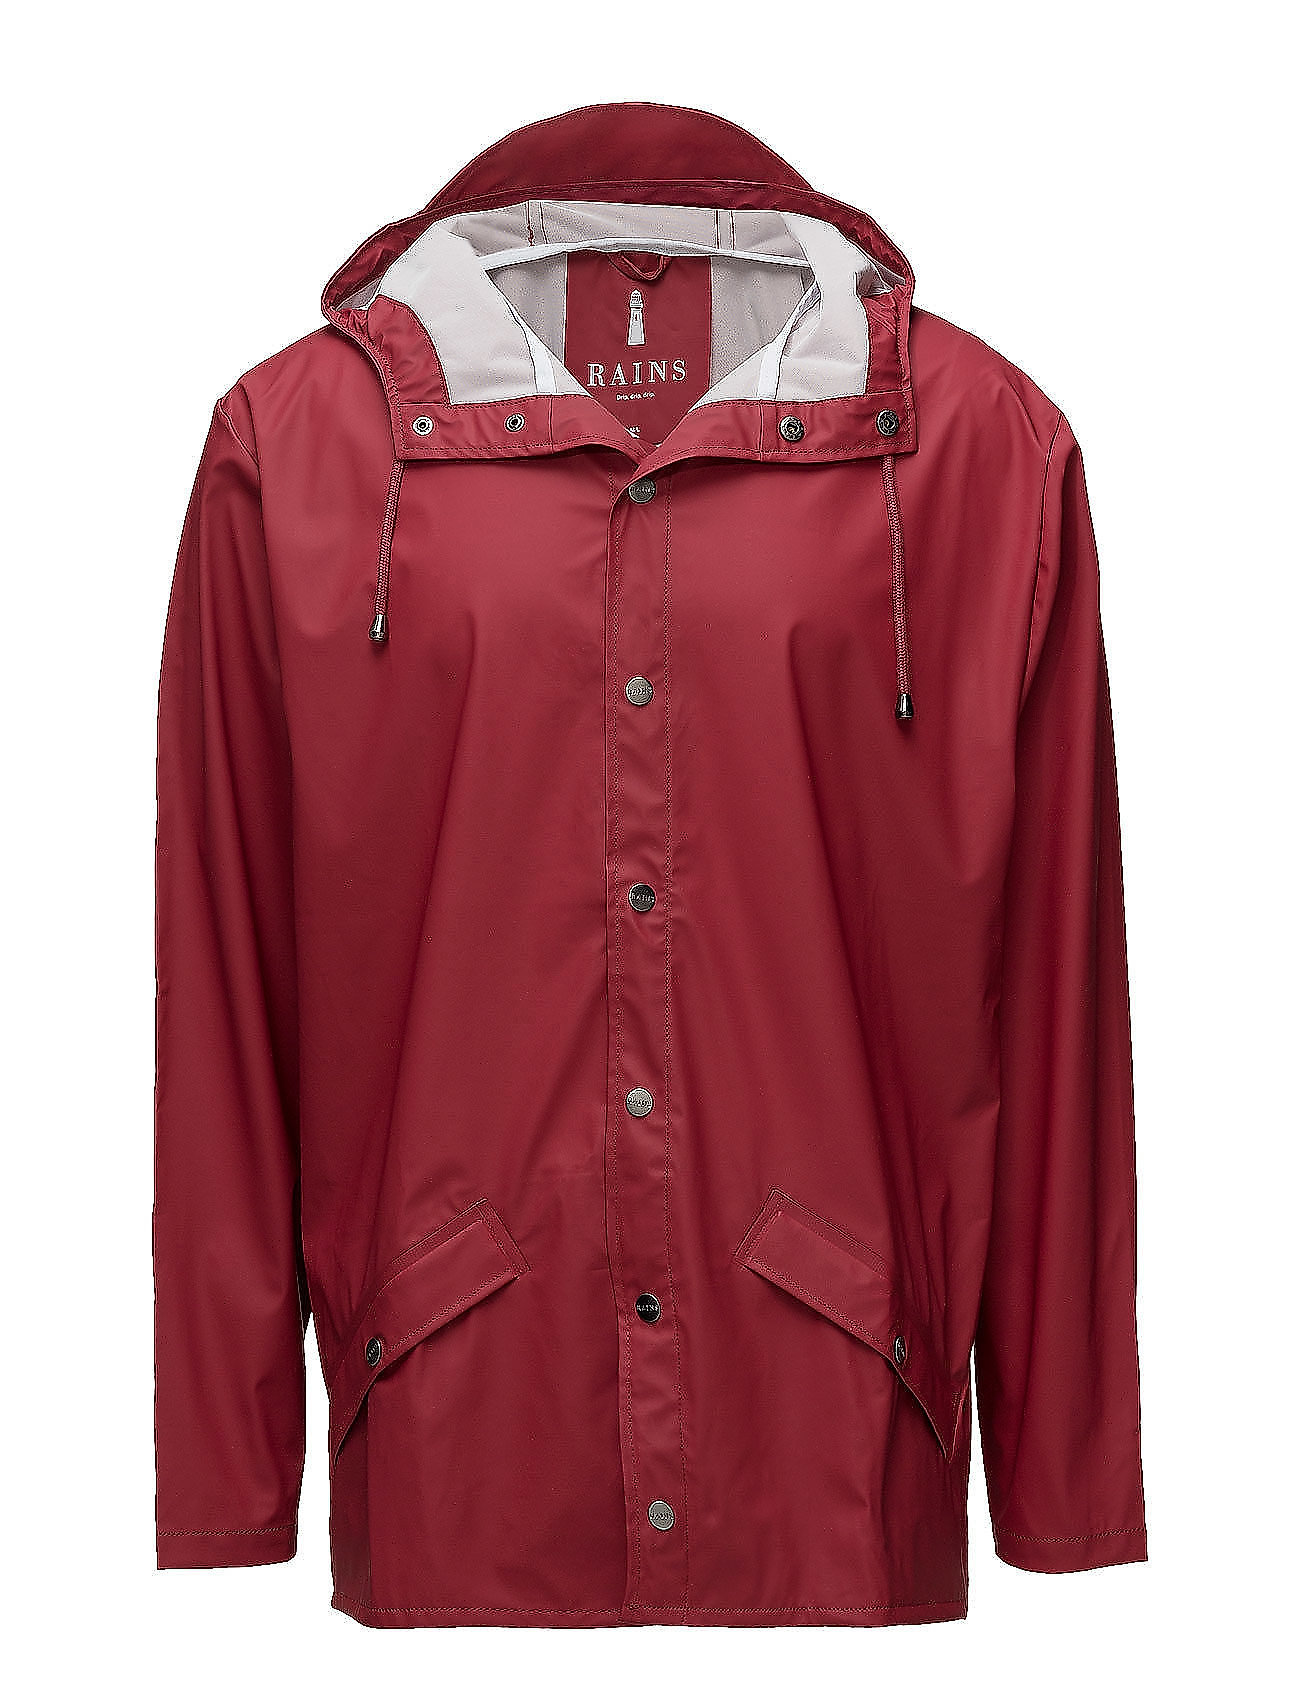 Rains Jacket - 20 SCARLET